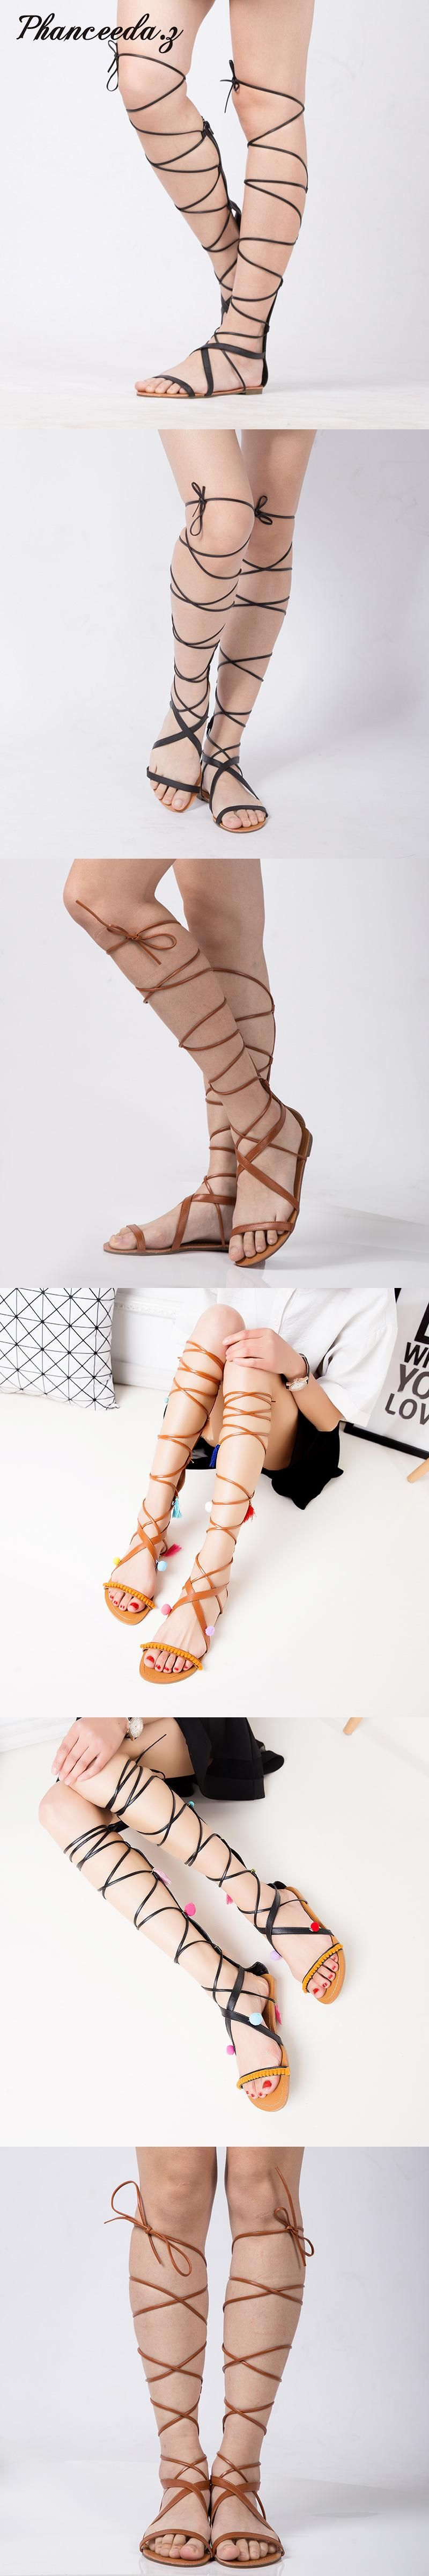 8a1edc89d902 New 2017 Shoes Women Sandals Casual Flat Lace Up Sexy Knee High Boots  Gladiator Tie String